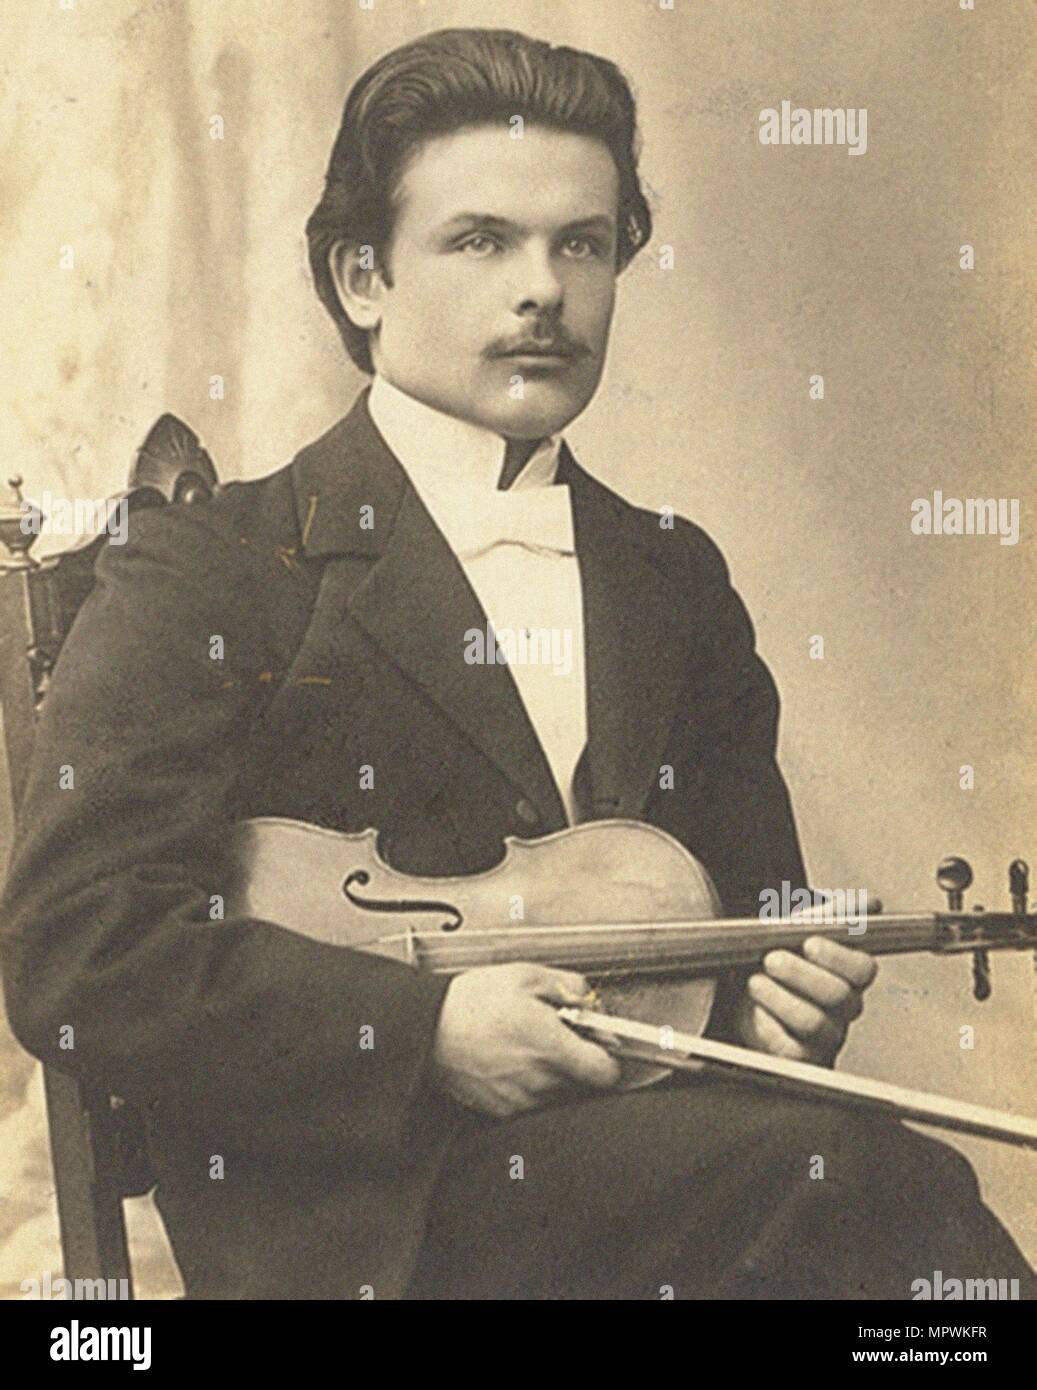 Victor Novacek (1873-1914) after the premiere of Violin Concerto in D minor, Op. 47 by Jean SibeliusStock Photo